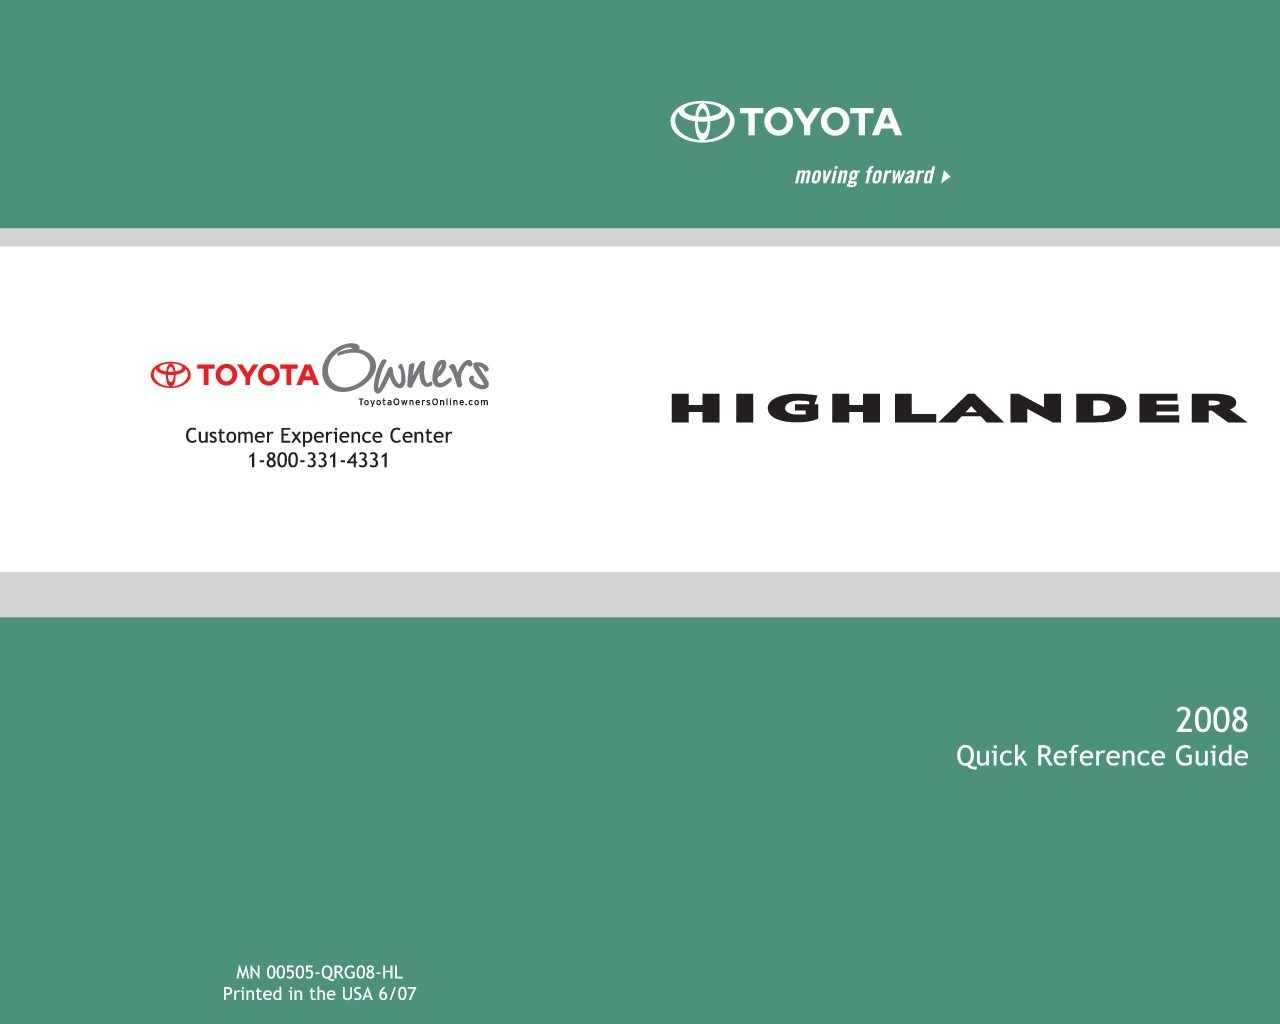 Toyota Highlander Owners Manual: Display contents